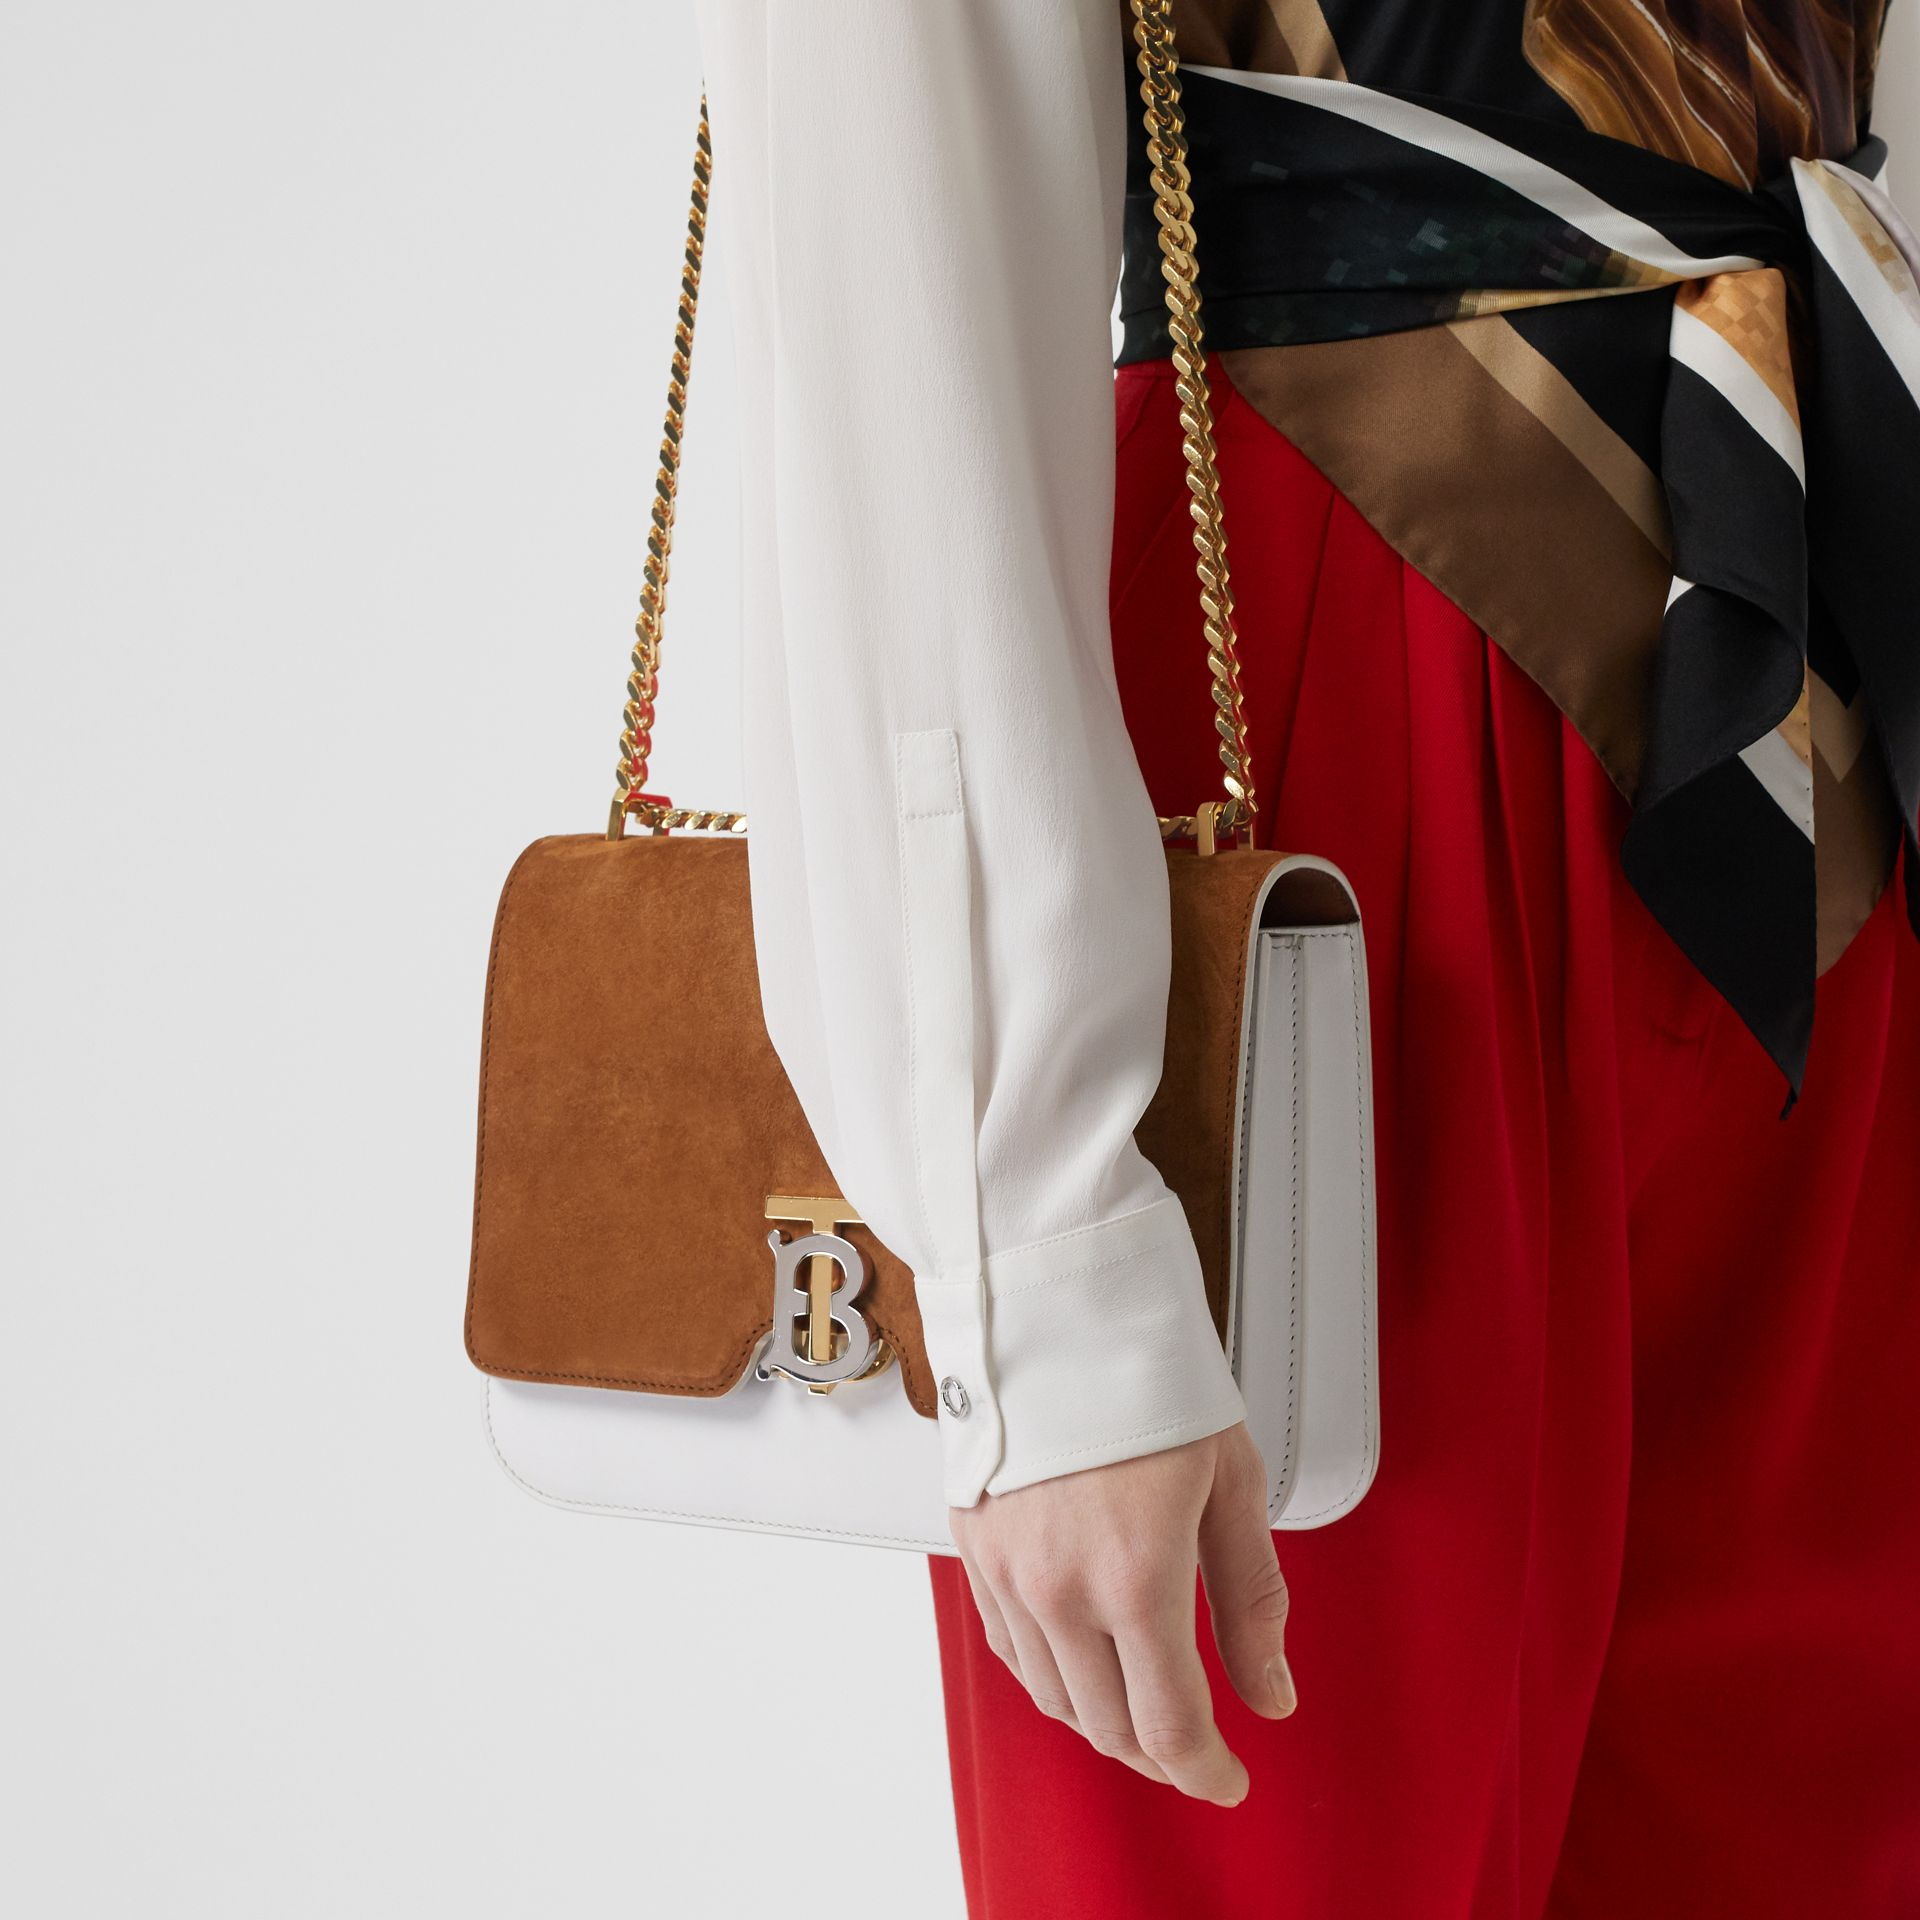 Medium Two-tone Leather and Suede TB Bag in White/brown - Women | Burberry - gallery image 2